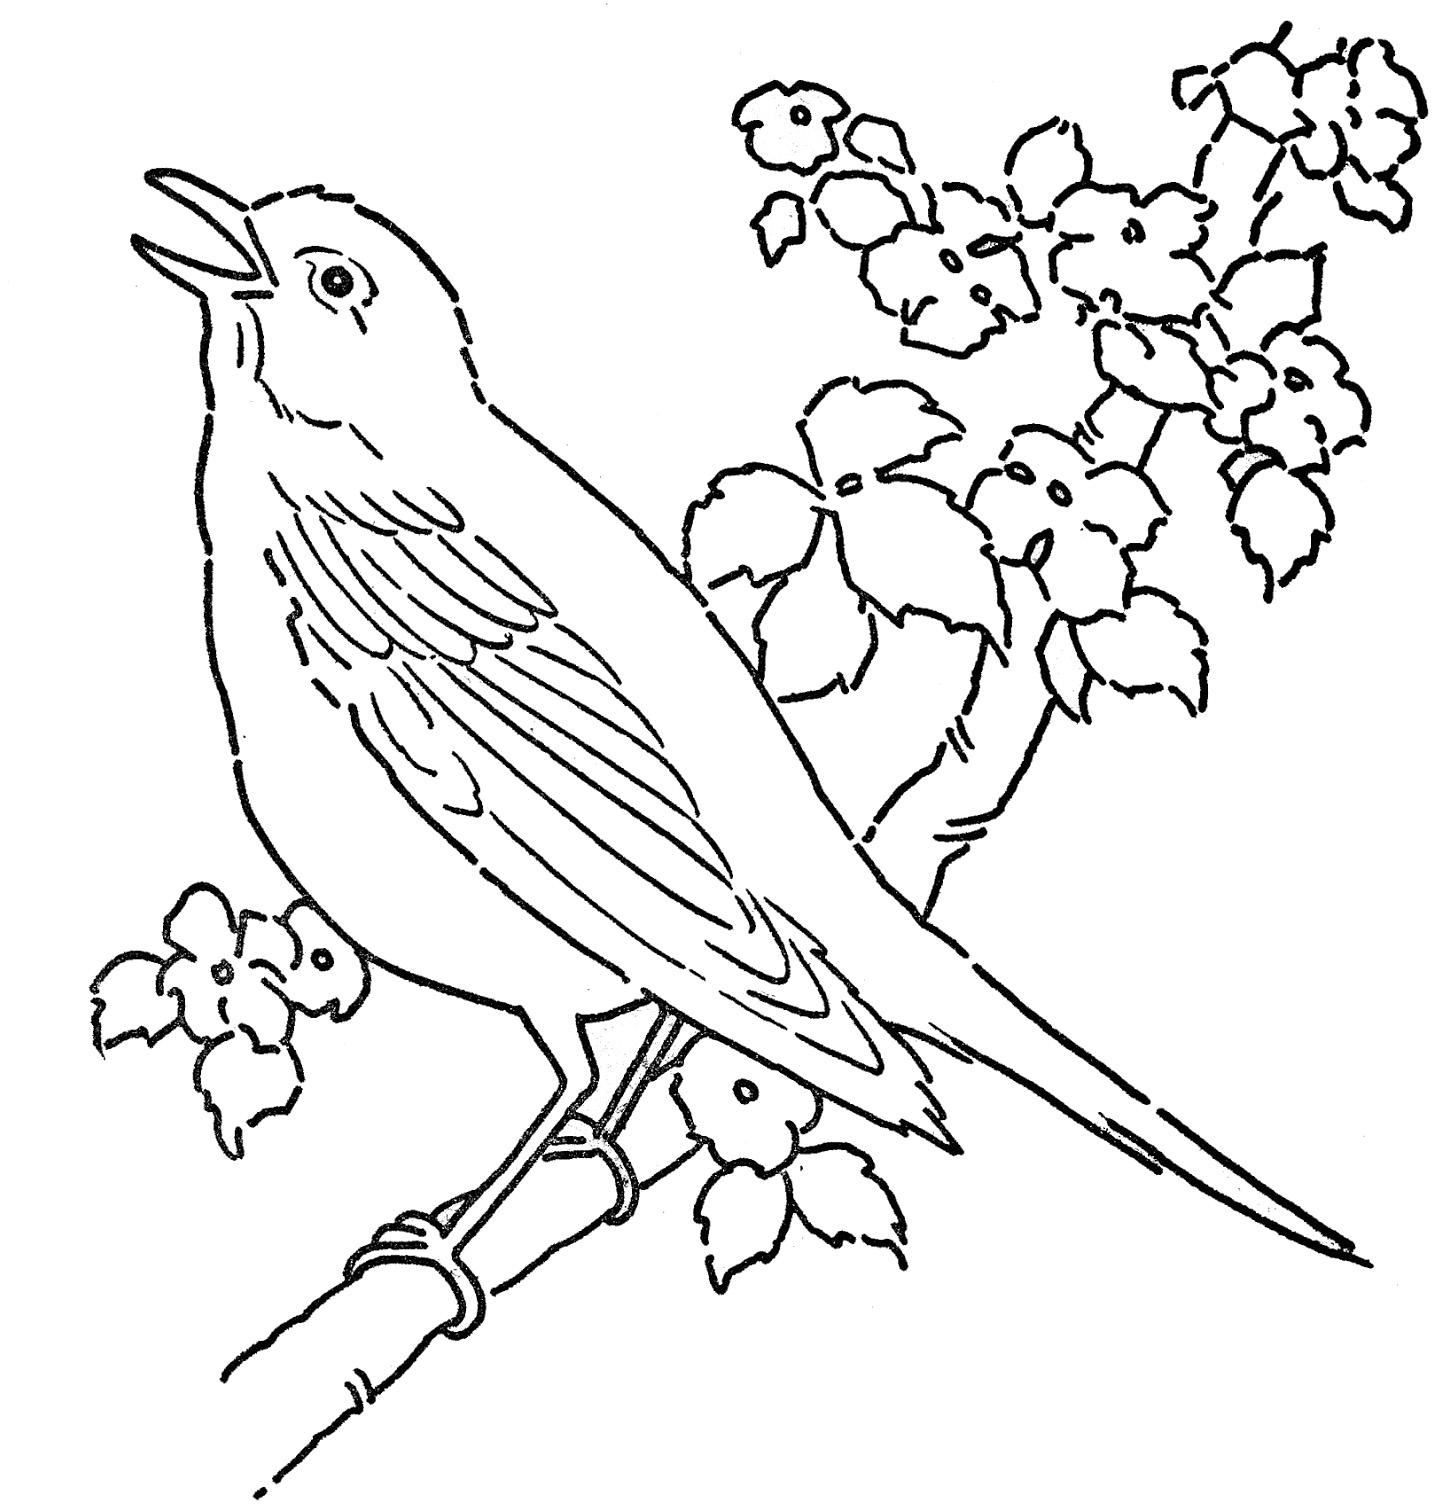 Bird coloring pages to download